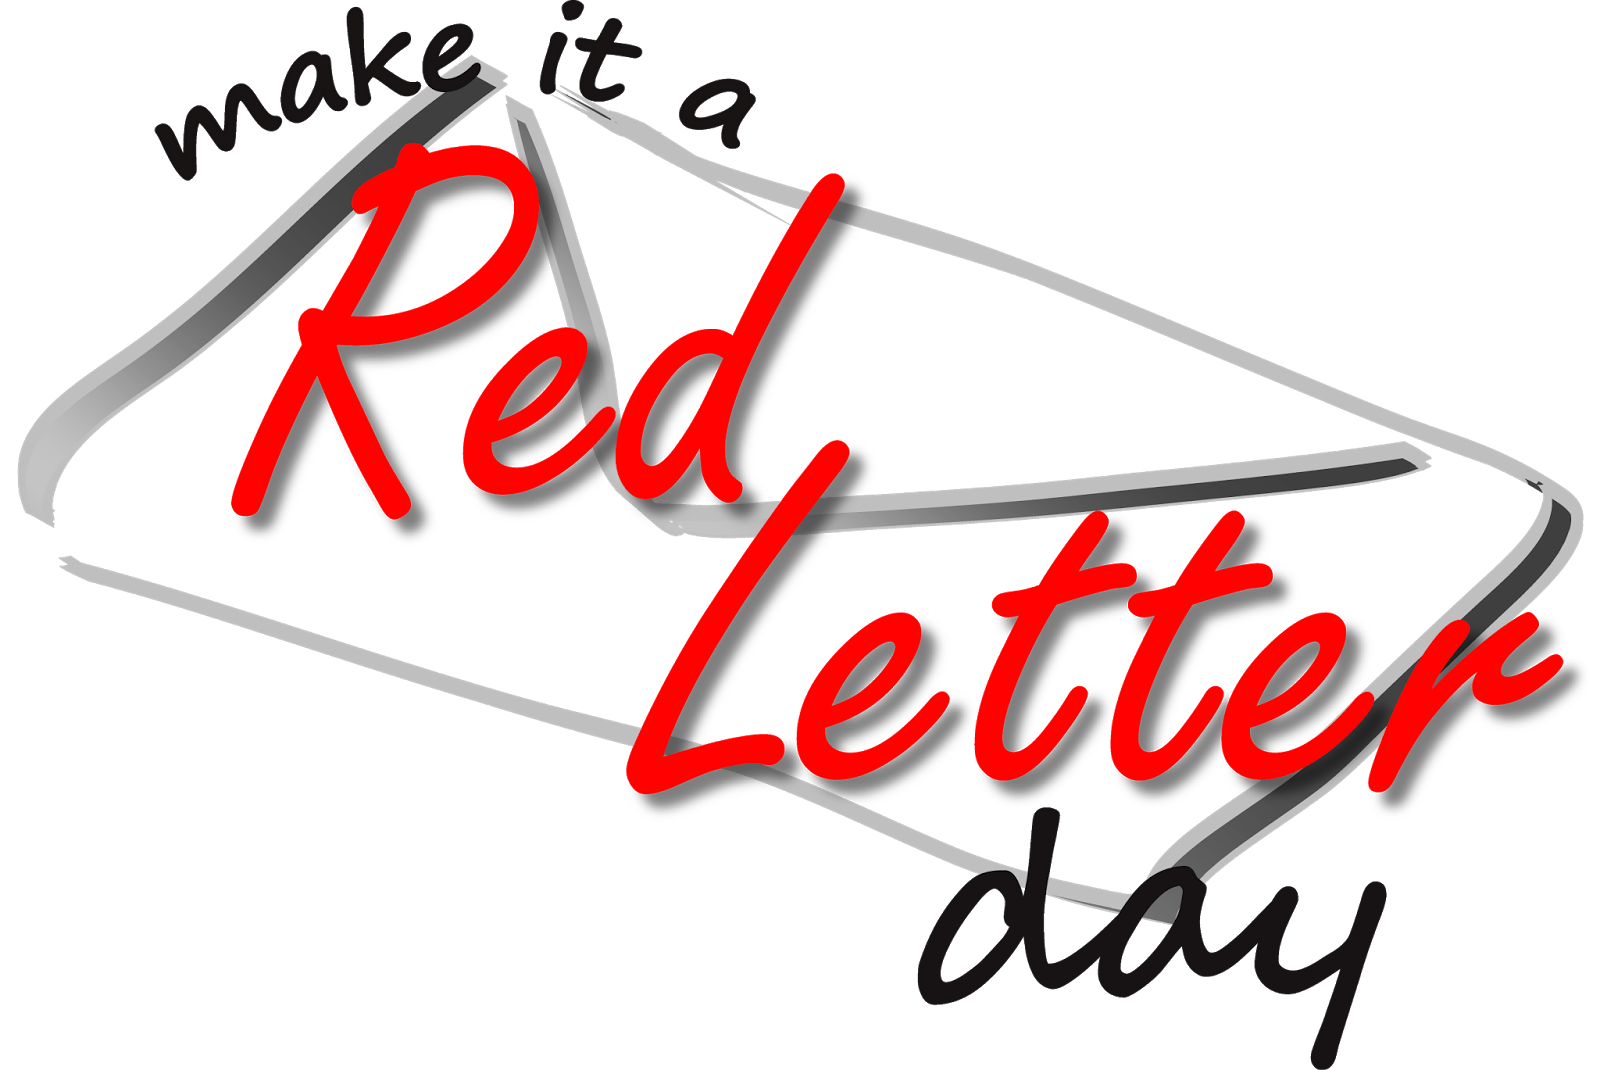 write an essay on a red letter day